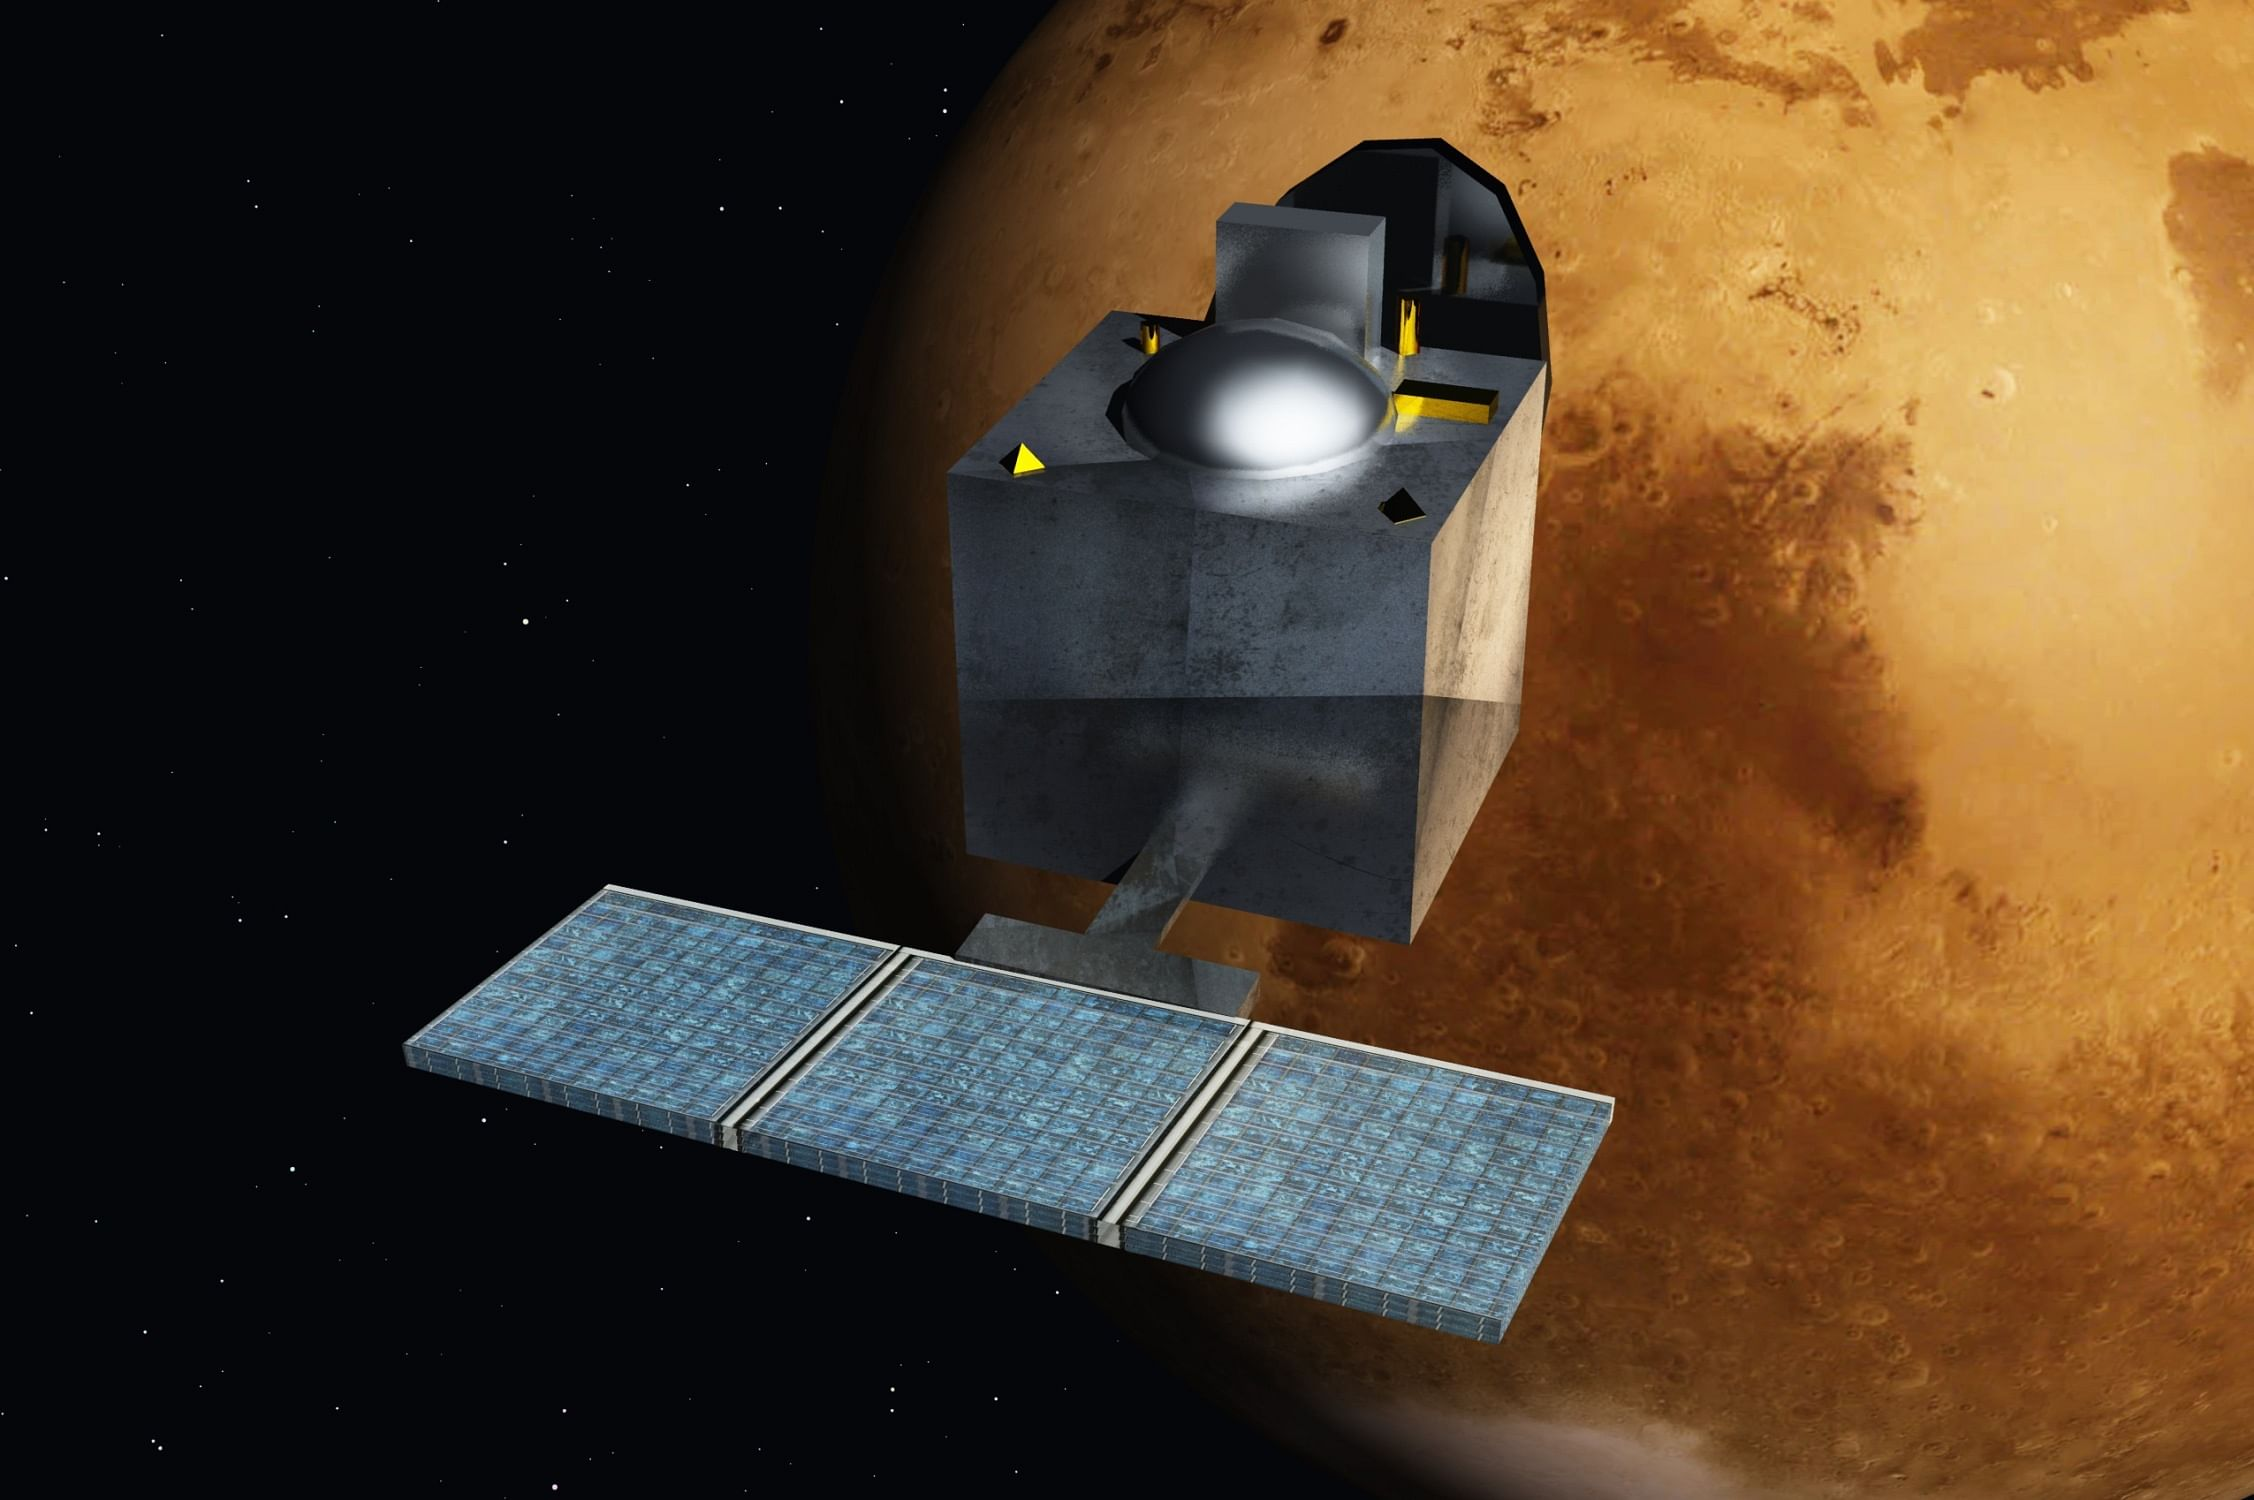 "An artist's concept art of India's Mangalyaan mission. ""People focus on Chandrayaan and Mangalyaan, and are often unaware of ISRO's significant contribution to other spheres of India's development,"" Mishra says. (Source: <a href=""https://commons.wikimedia.org/wiki/File:Mars_Orbiter_Mission_-_India_-_ArtistsConcept.jpg#/media/File:Mars_Orbiter_Mission_-_India_-_ArtistsConcept.jpg"" target=""_blank"">Wikimedia Commons</a>)"